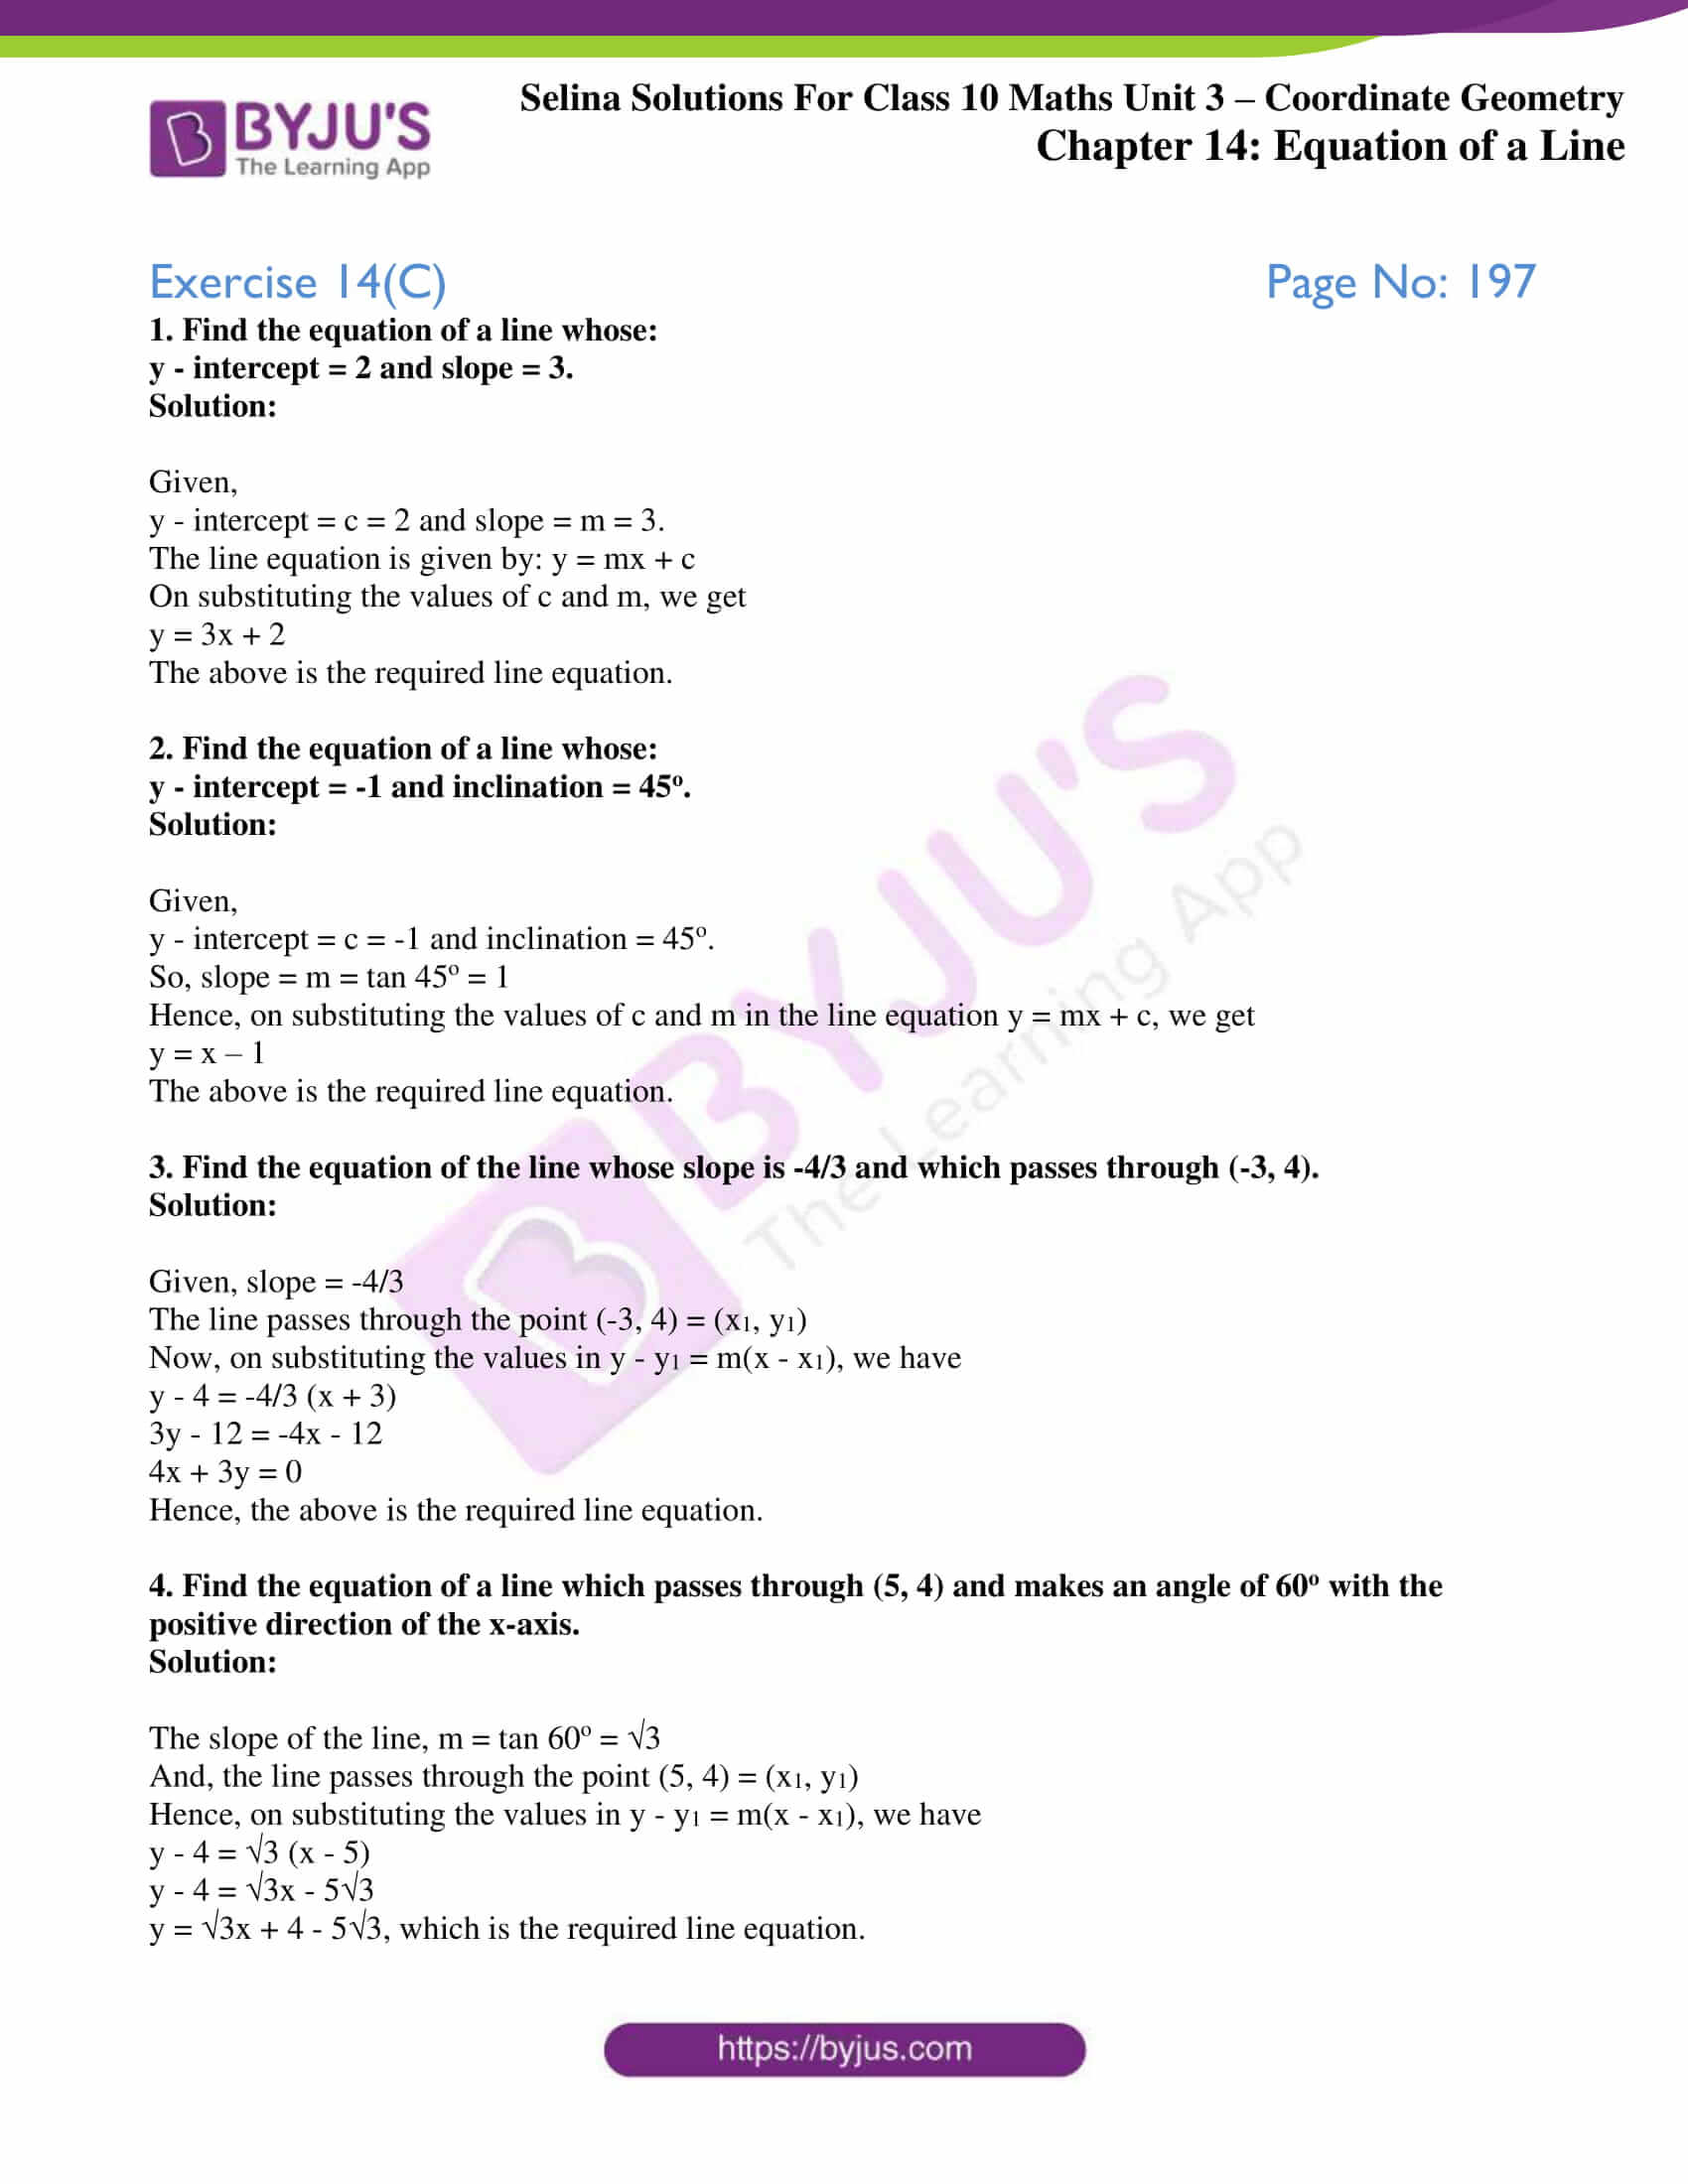 selina solution concise maths class 10 chapter 14 ex c 1